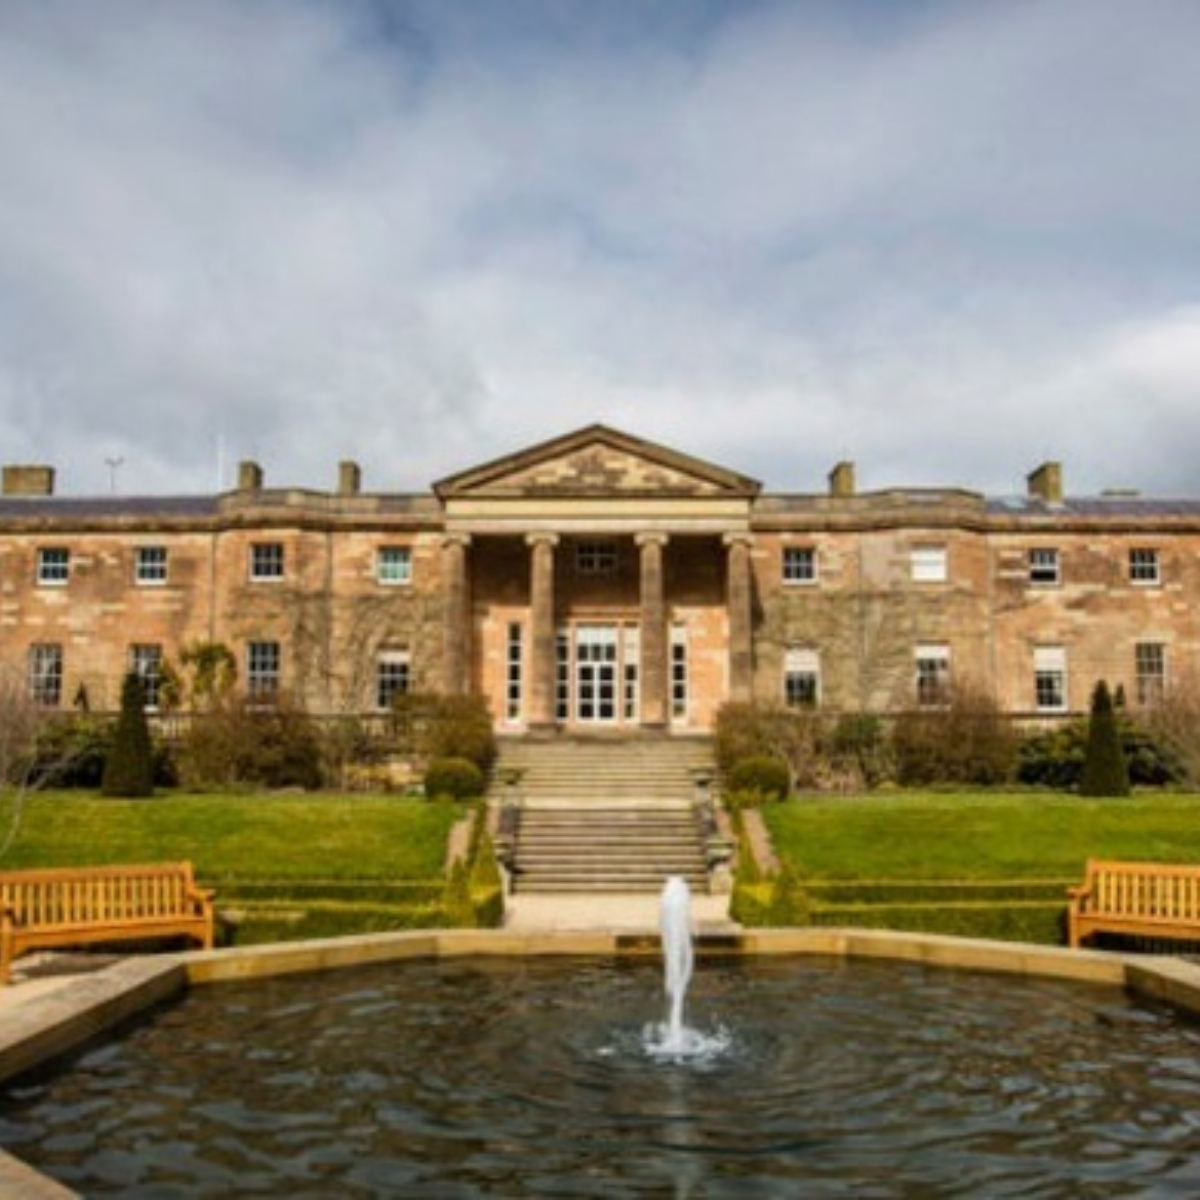 Hillsborough Castle Images